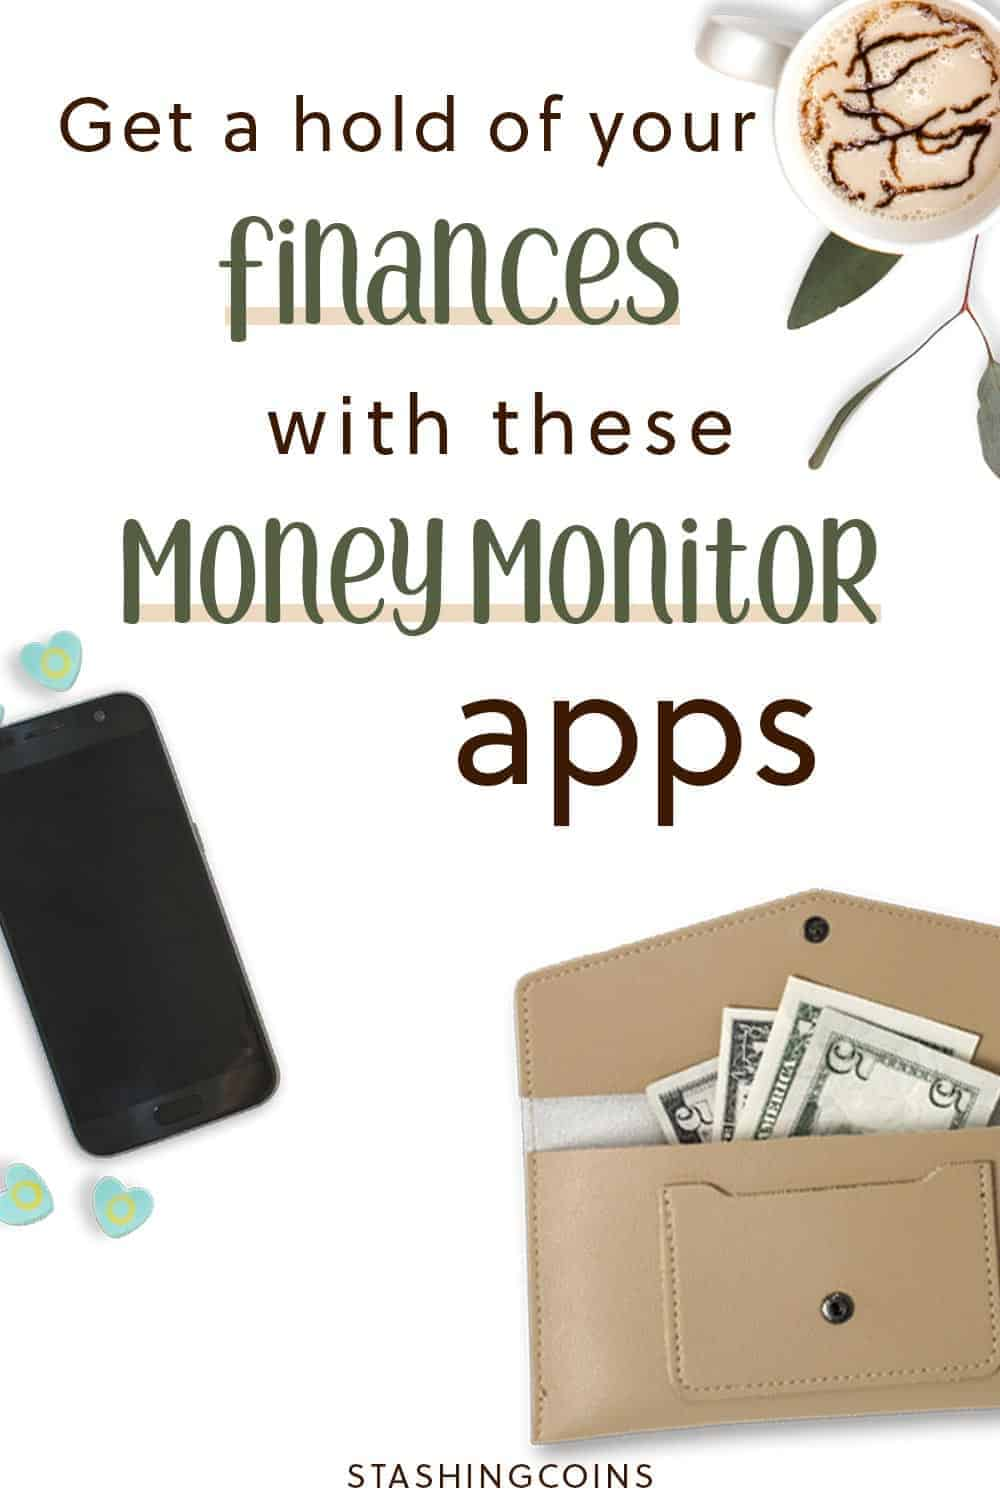 Money monitor apps to help you track your finances